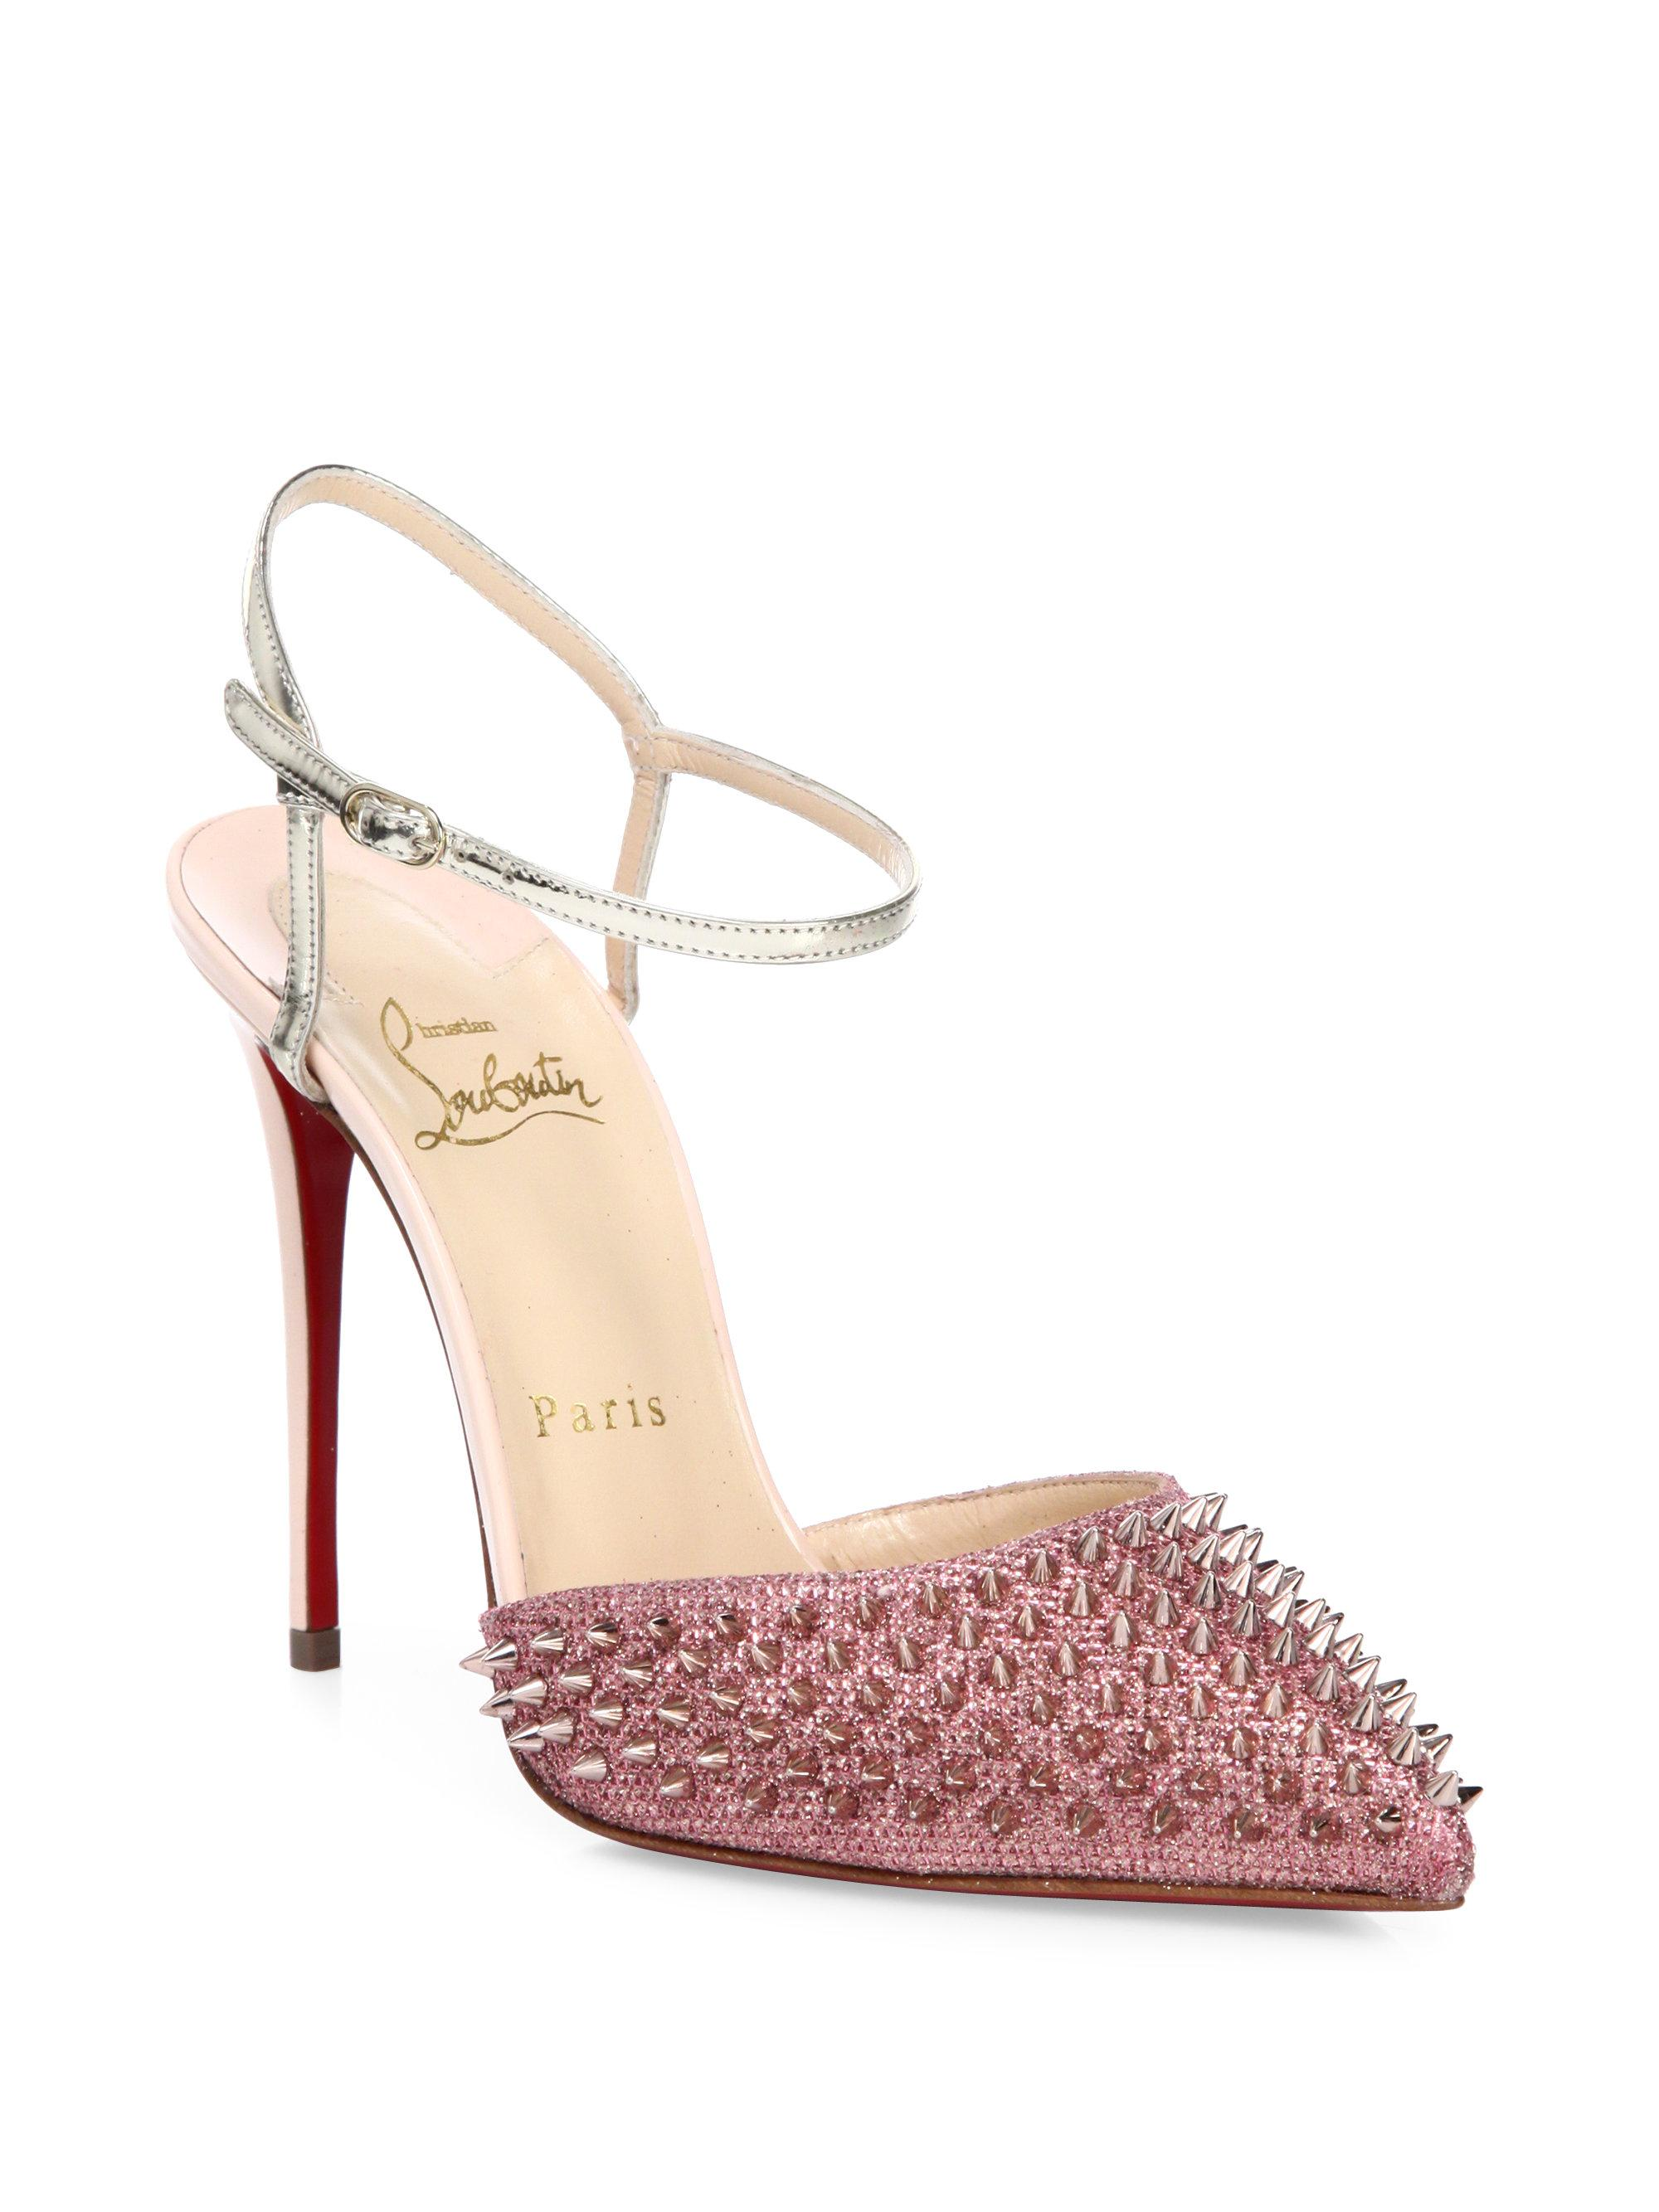 8797c7b58280 Gallery. Previously sold at  Saks Fifth Avenue · Women s Christian  Louboutin Spike